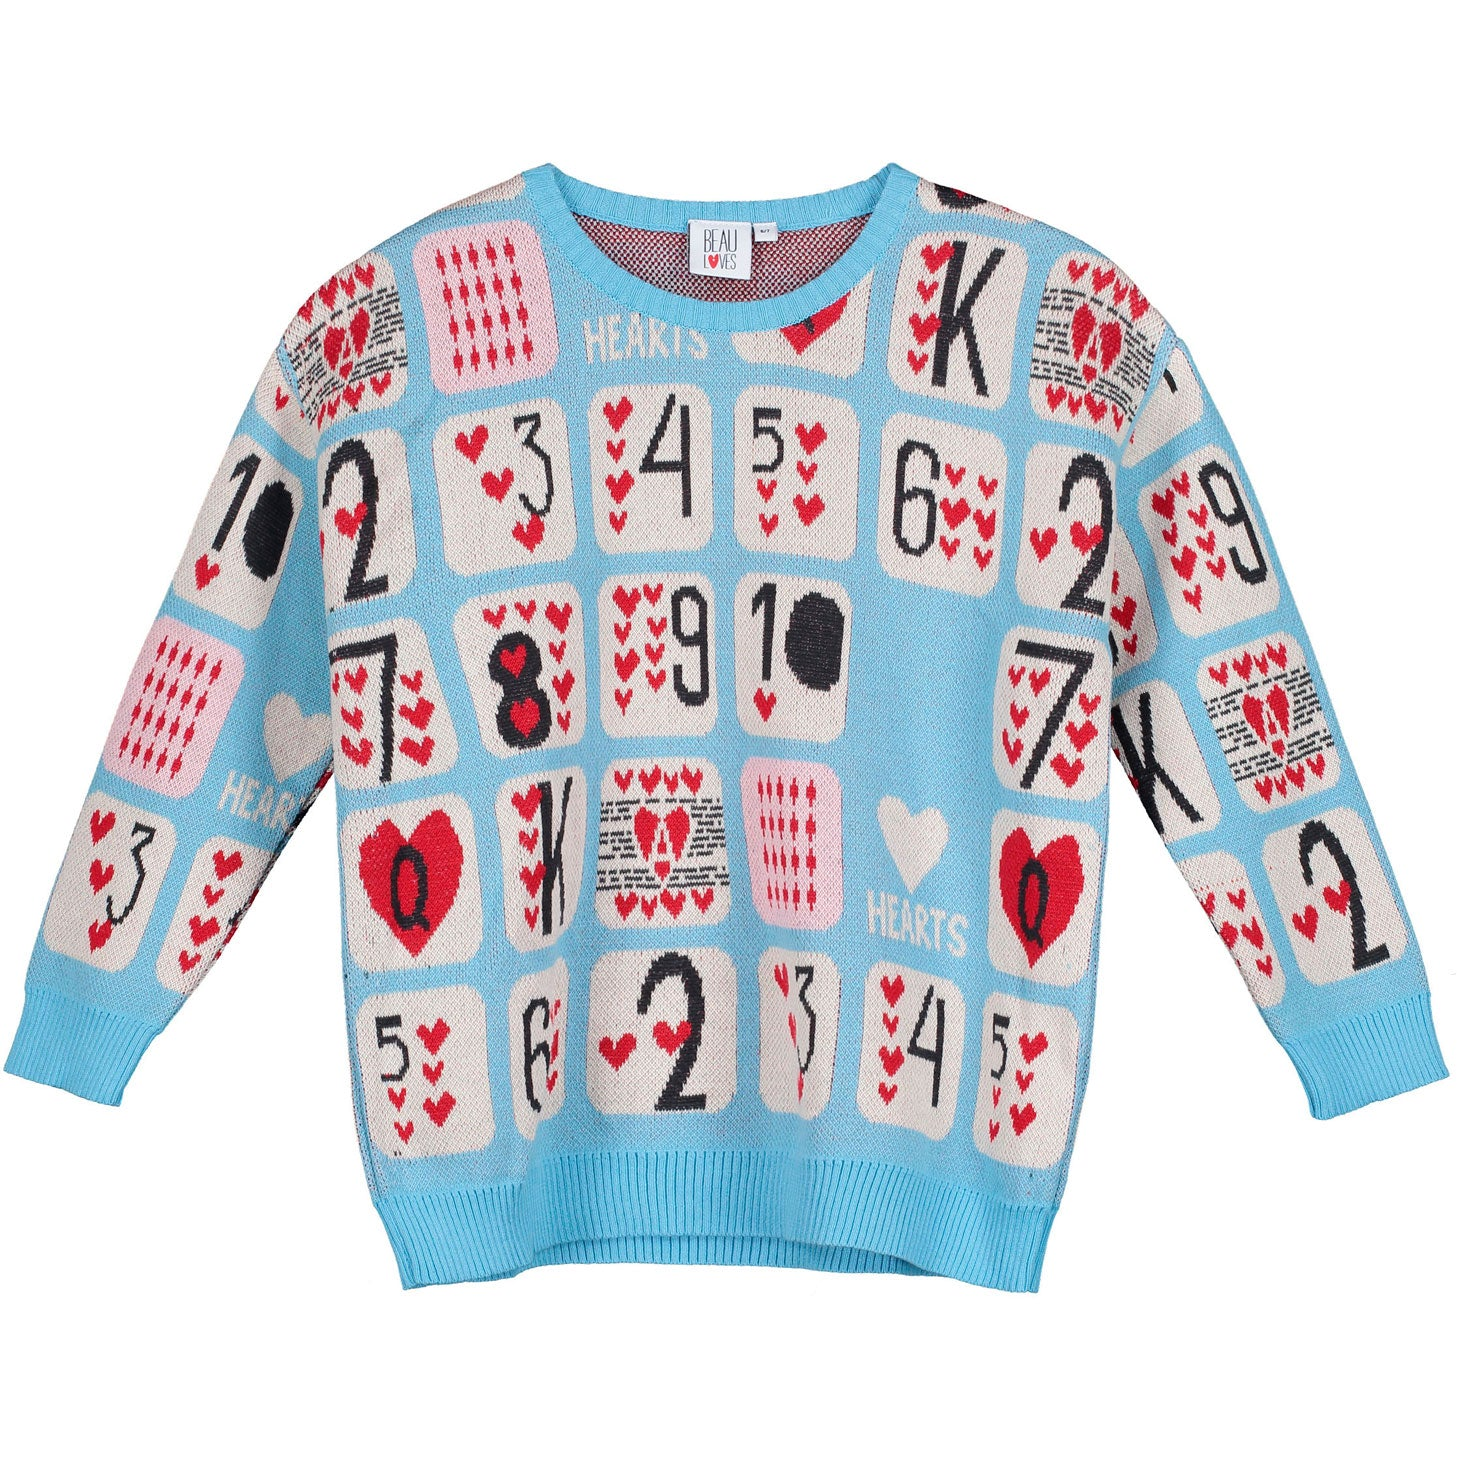 Beau Loves Sky Game of Hearts Knit Sweater